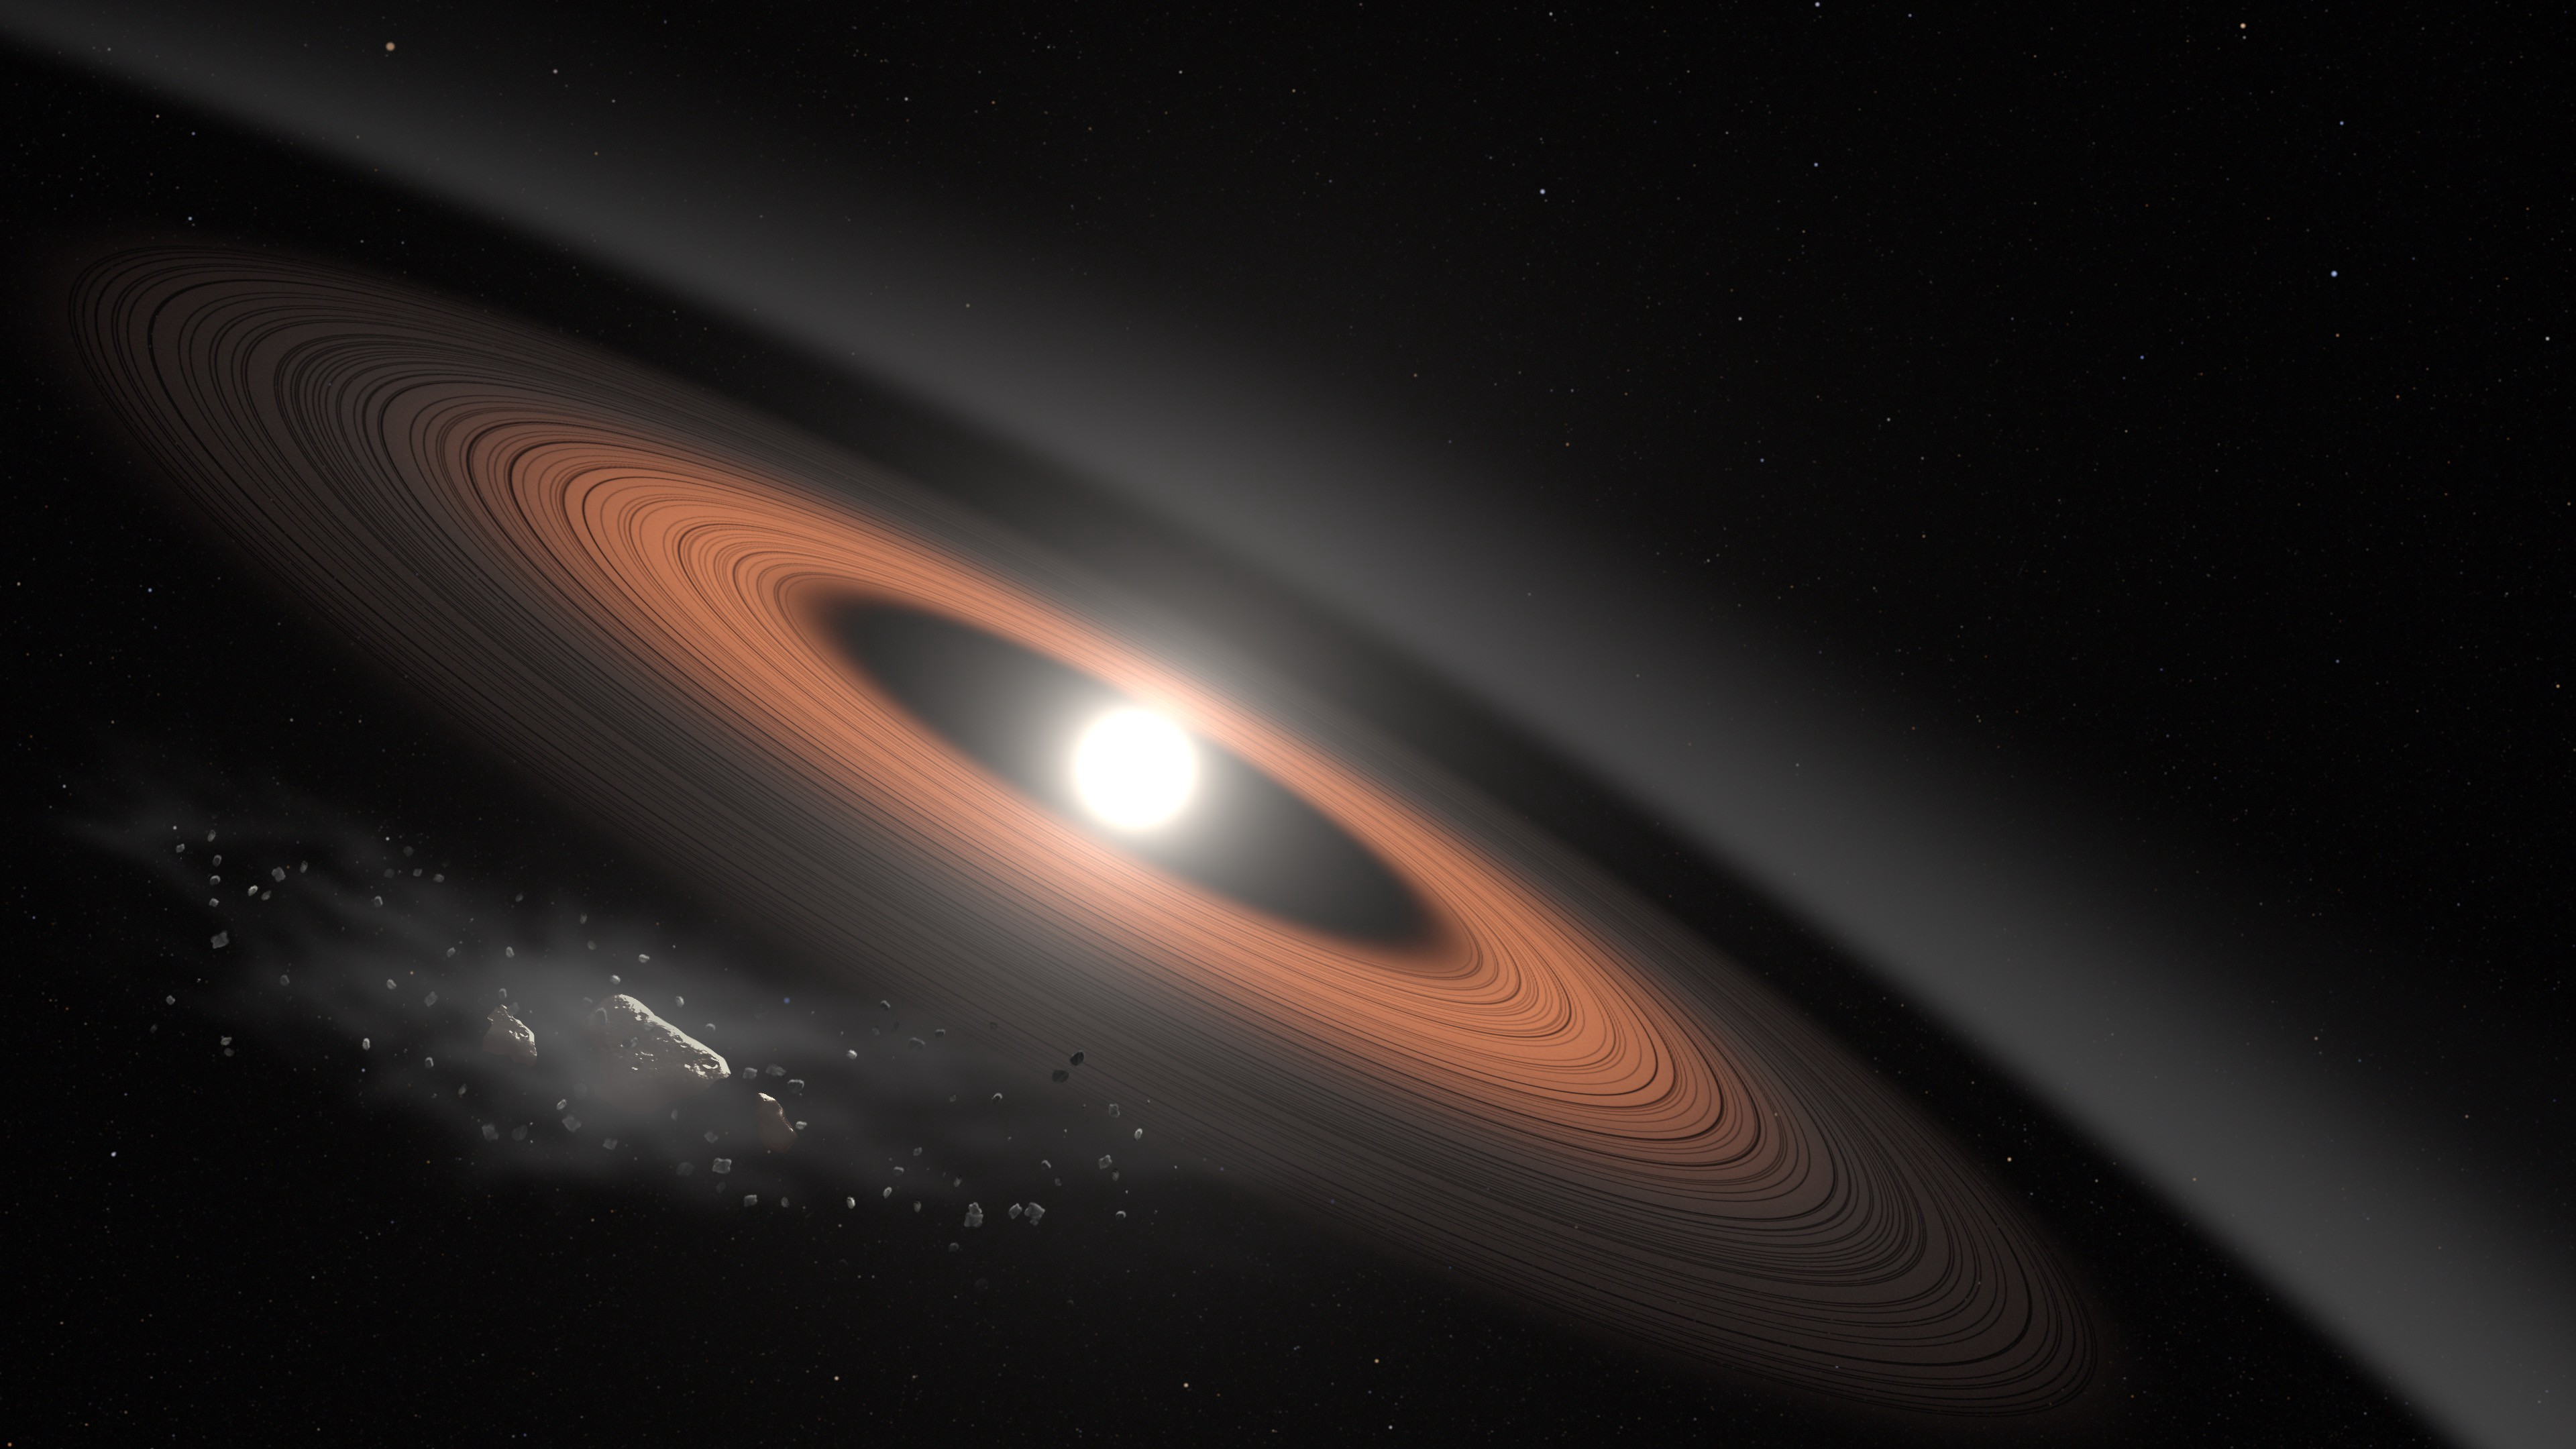 Rings surround a small, bright star with debris in the bottom left.